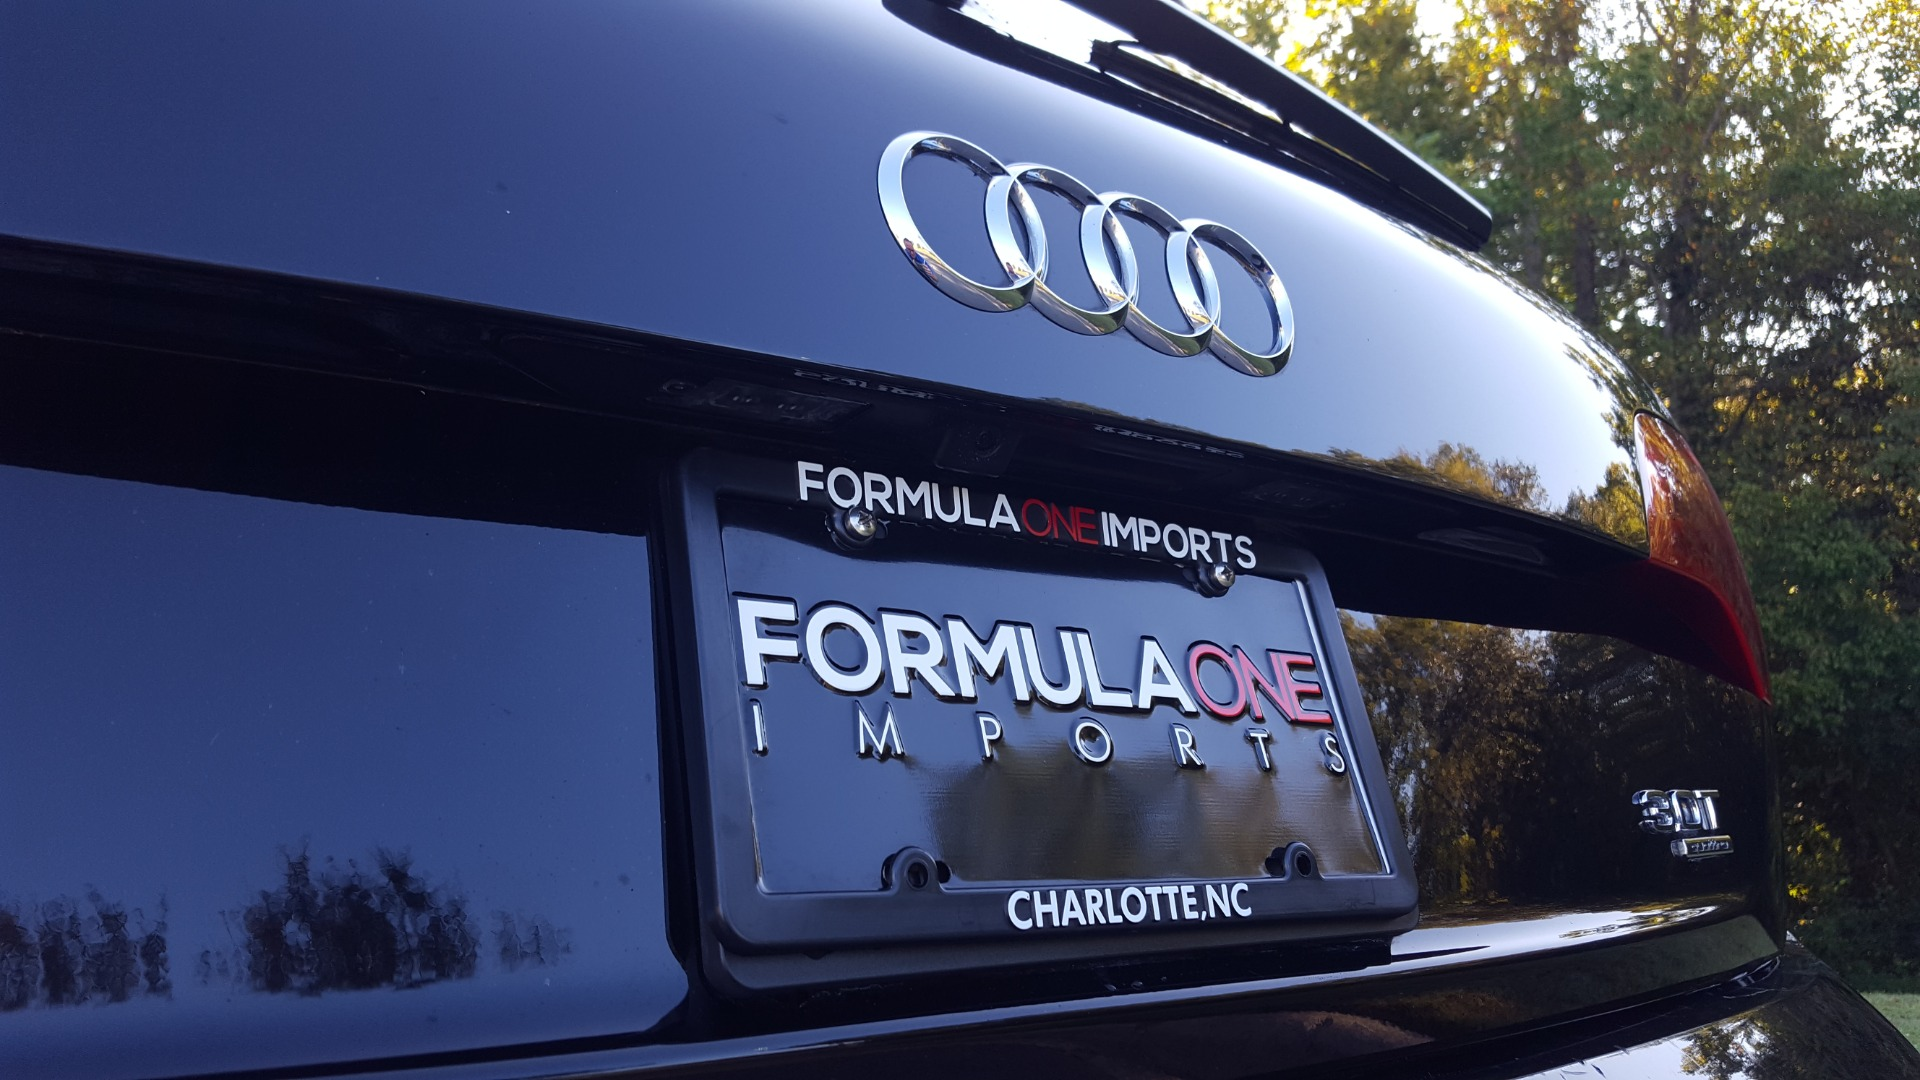 Used 2015 Audi Q7 3.0T PREMIUM PLUS TIPTRONIC / NAV / OFFROAD PLUS / WARM WEATHER / COLD WEAT for sale Sold at Formula Imports in Charlotte NC 28227 11